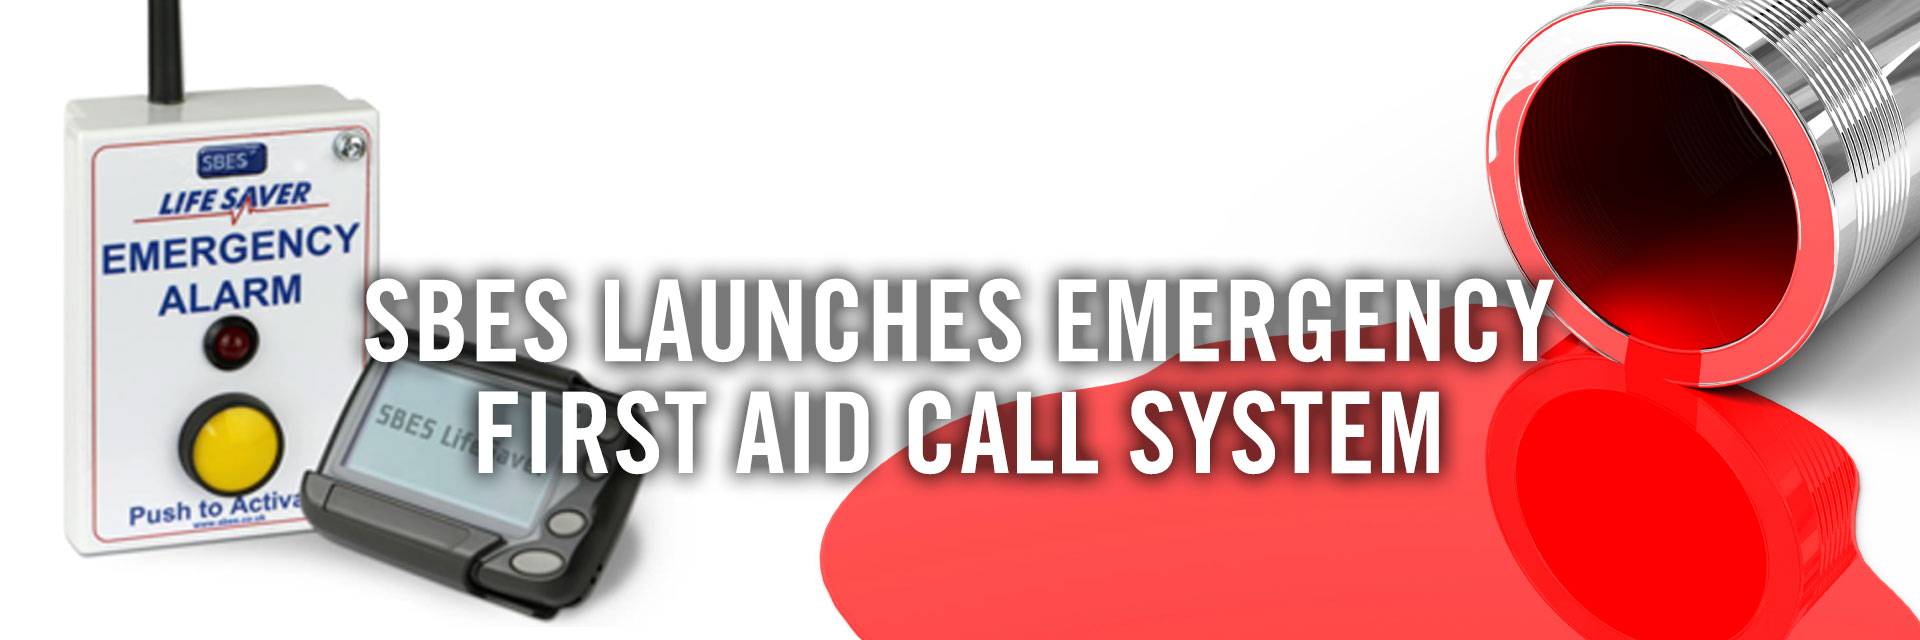 Emergency First Aid Call System